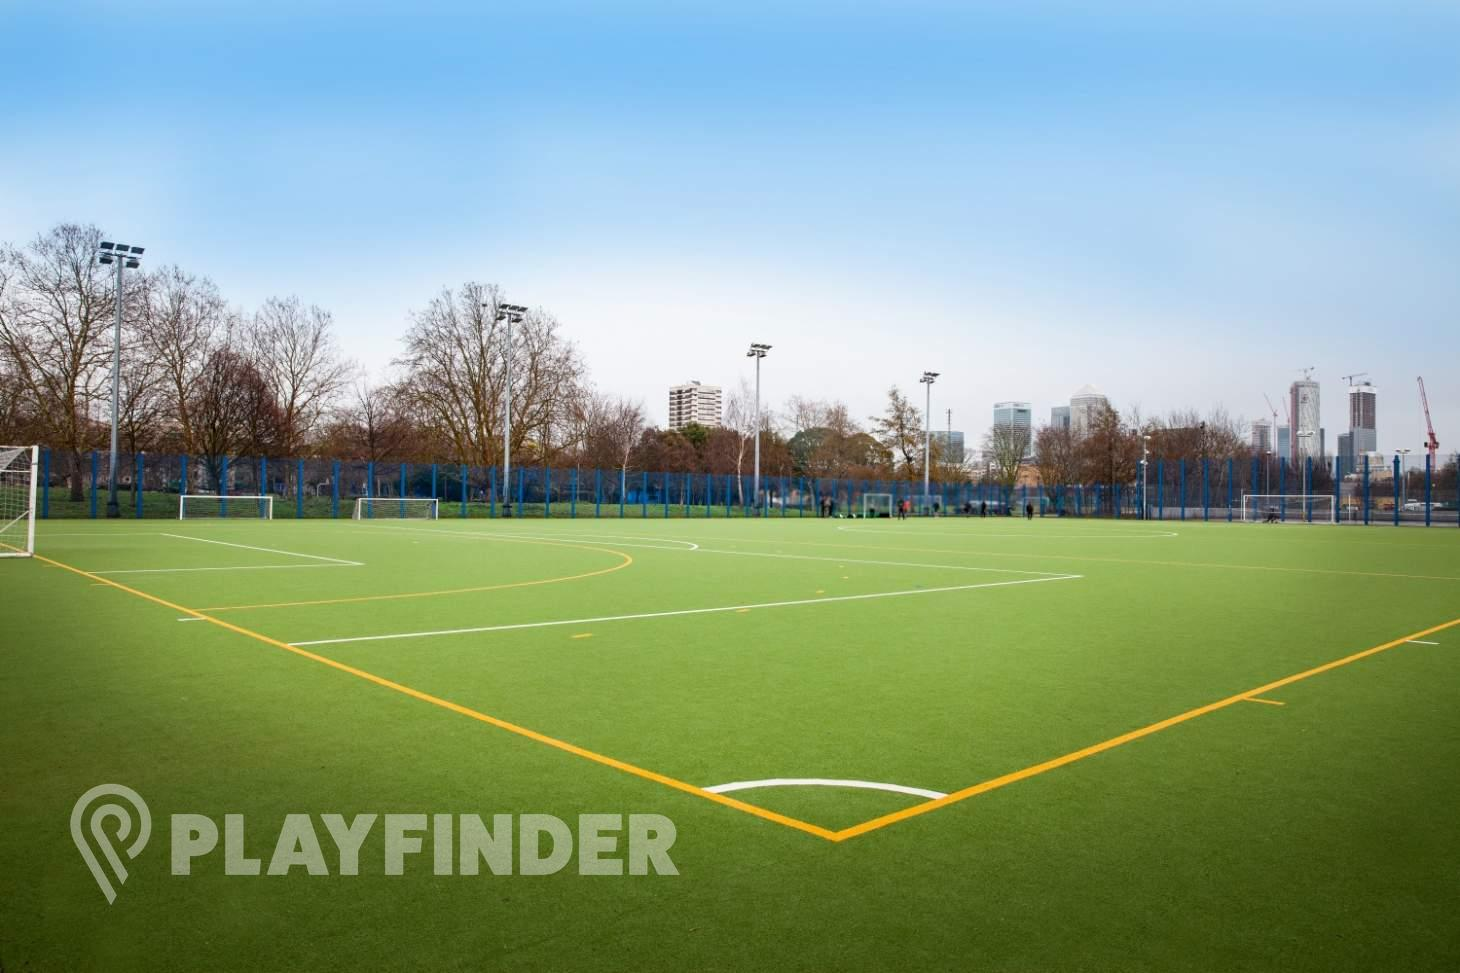 Mile End Park Leisure Centre and Stadium Outdoor | Astroturf hockey pitch